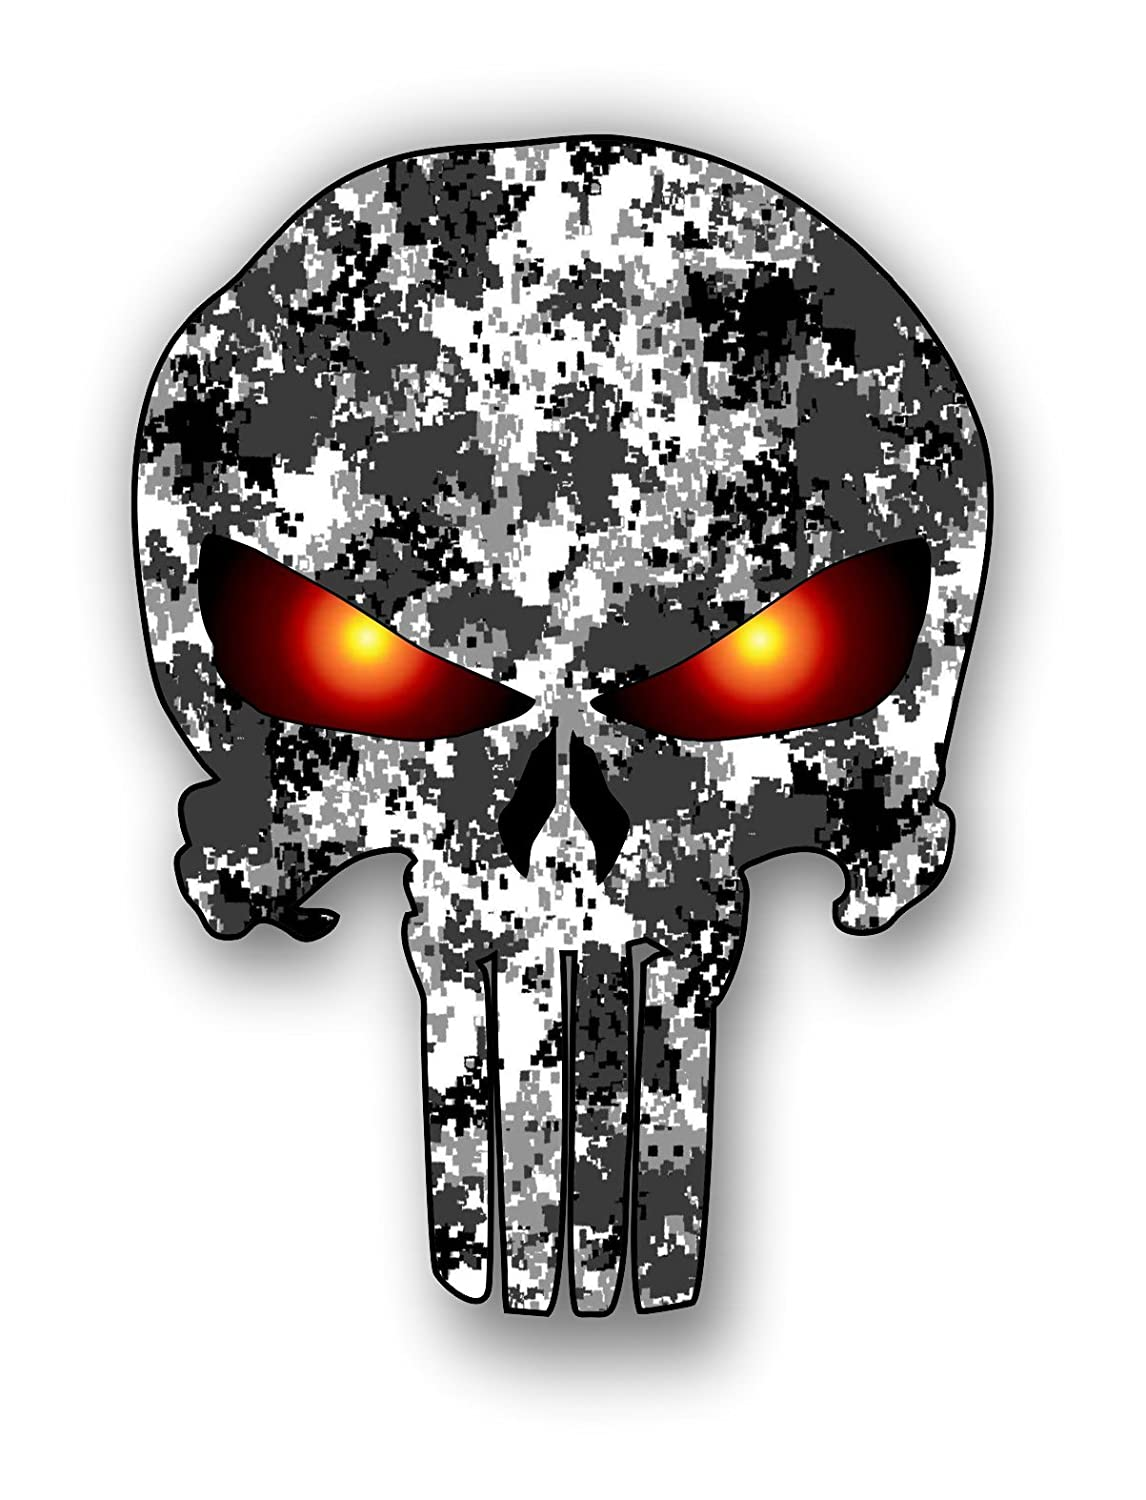 Amazon com punisher skull urban camo pattern sticker with glowing eyes car truck laptop toolbox bumper decal automotive